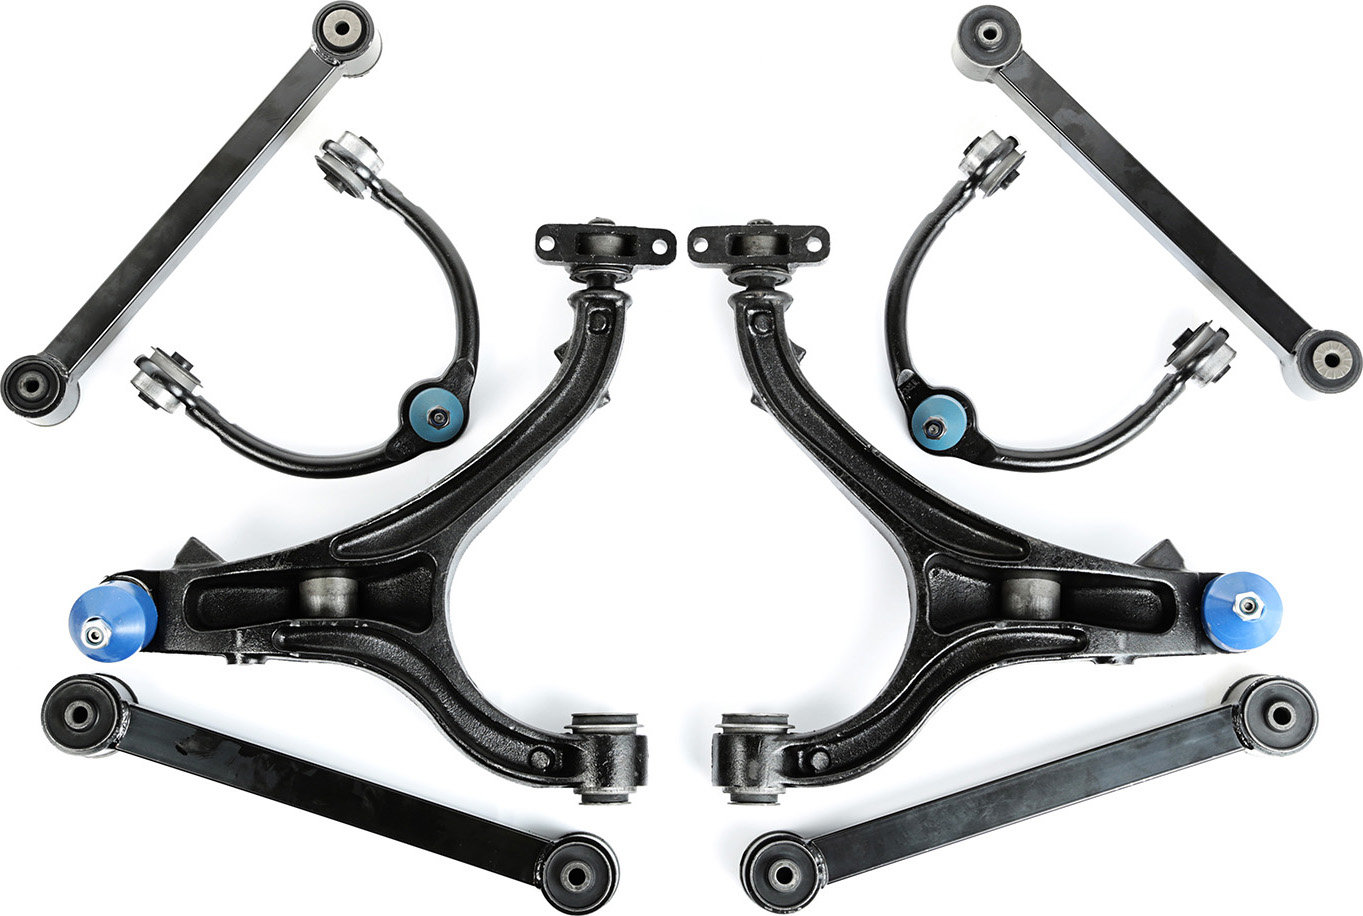 OMIX-ADA 18282.41 Control Arm Kit for 05-10 Jeep Grand